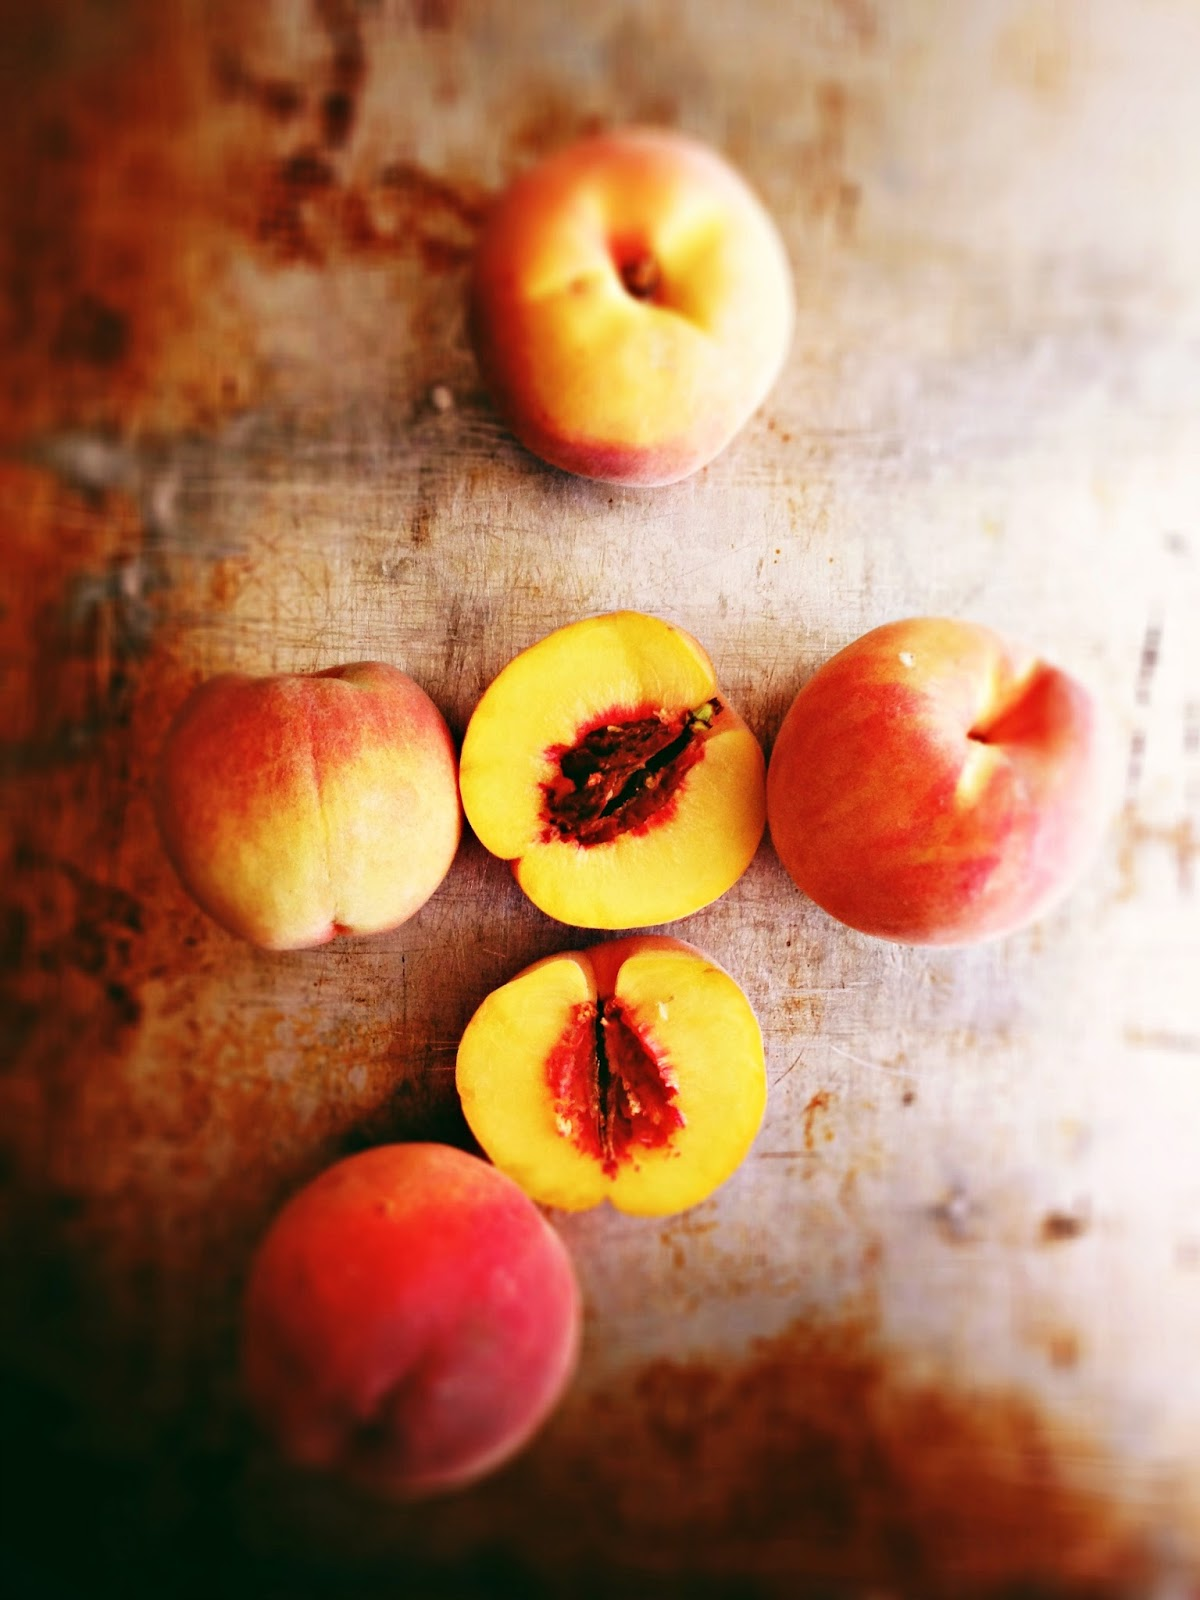 sweetsugarbean: The Last Hurrah: Baked Peaches with Almond Crust